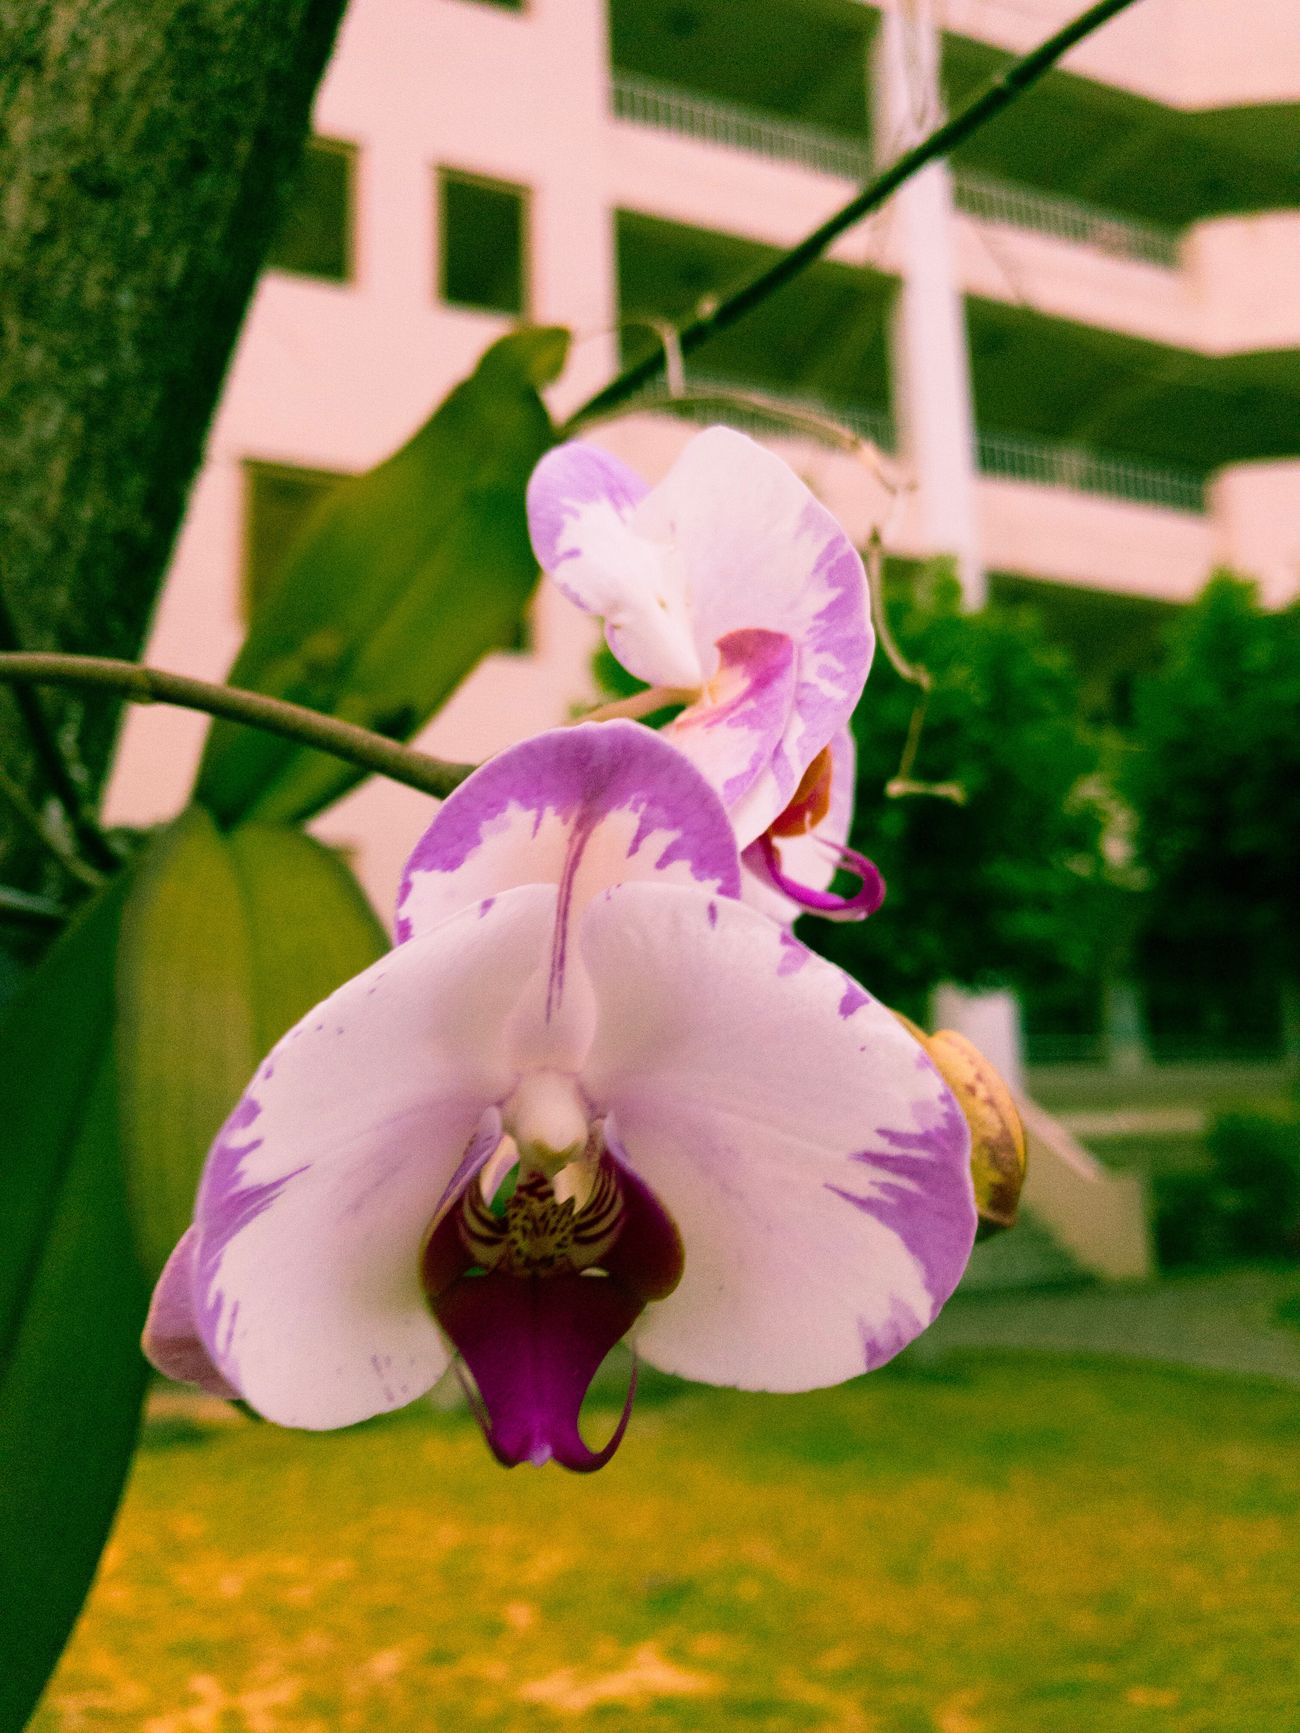 Phalaenopsis on the tree.... Flower Fragility Beauty In Nature Growth Petal Nature Flower Head Freshness Pink Color Focus On Foreground Close-up No People Plant Day Outdoors Blooming